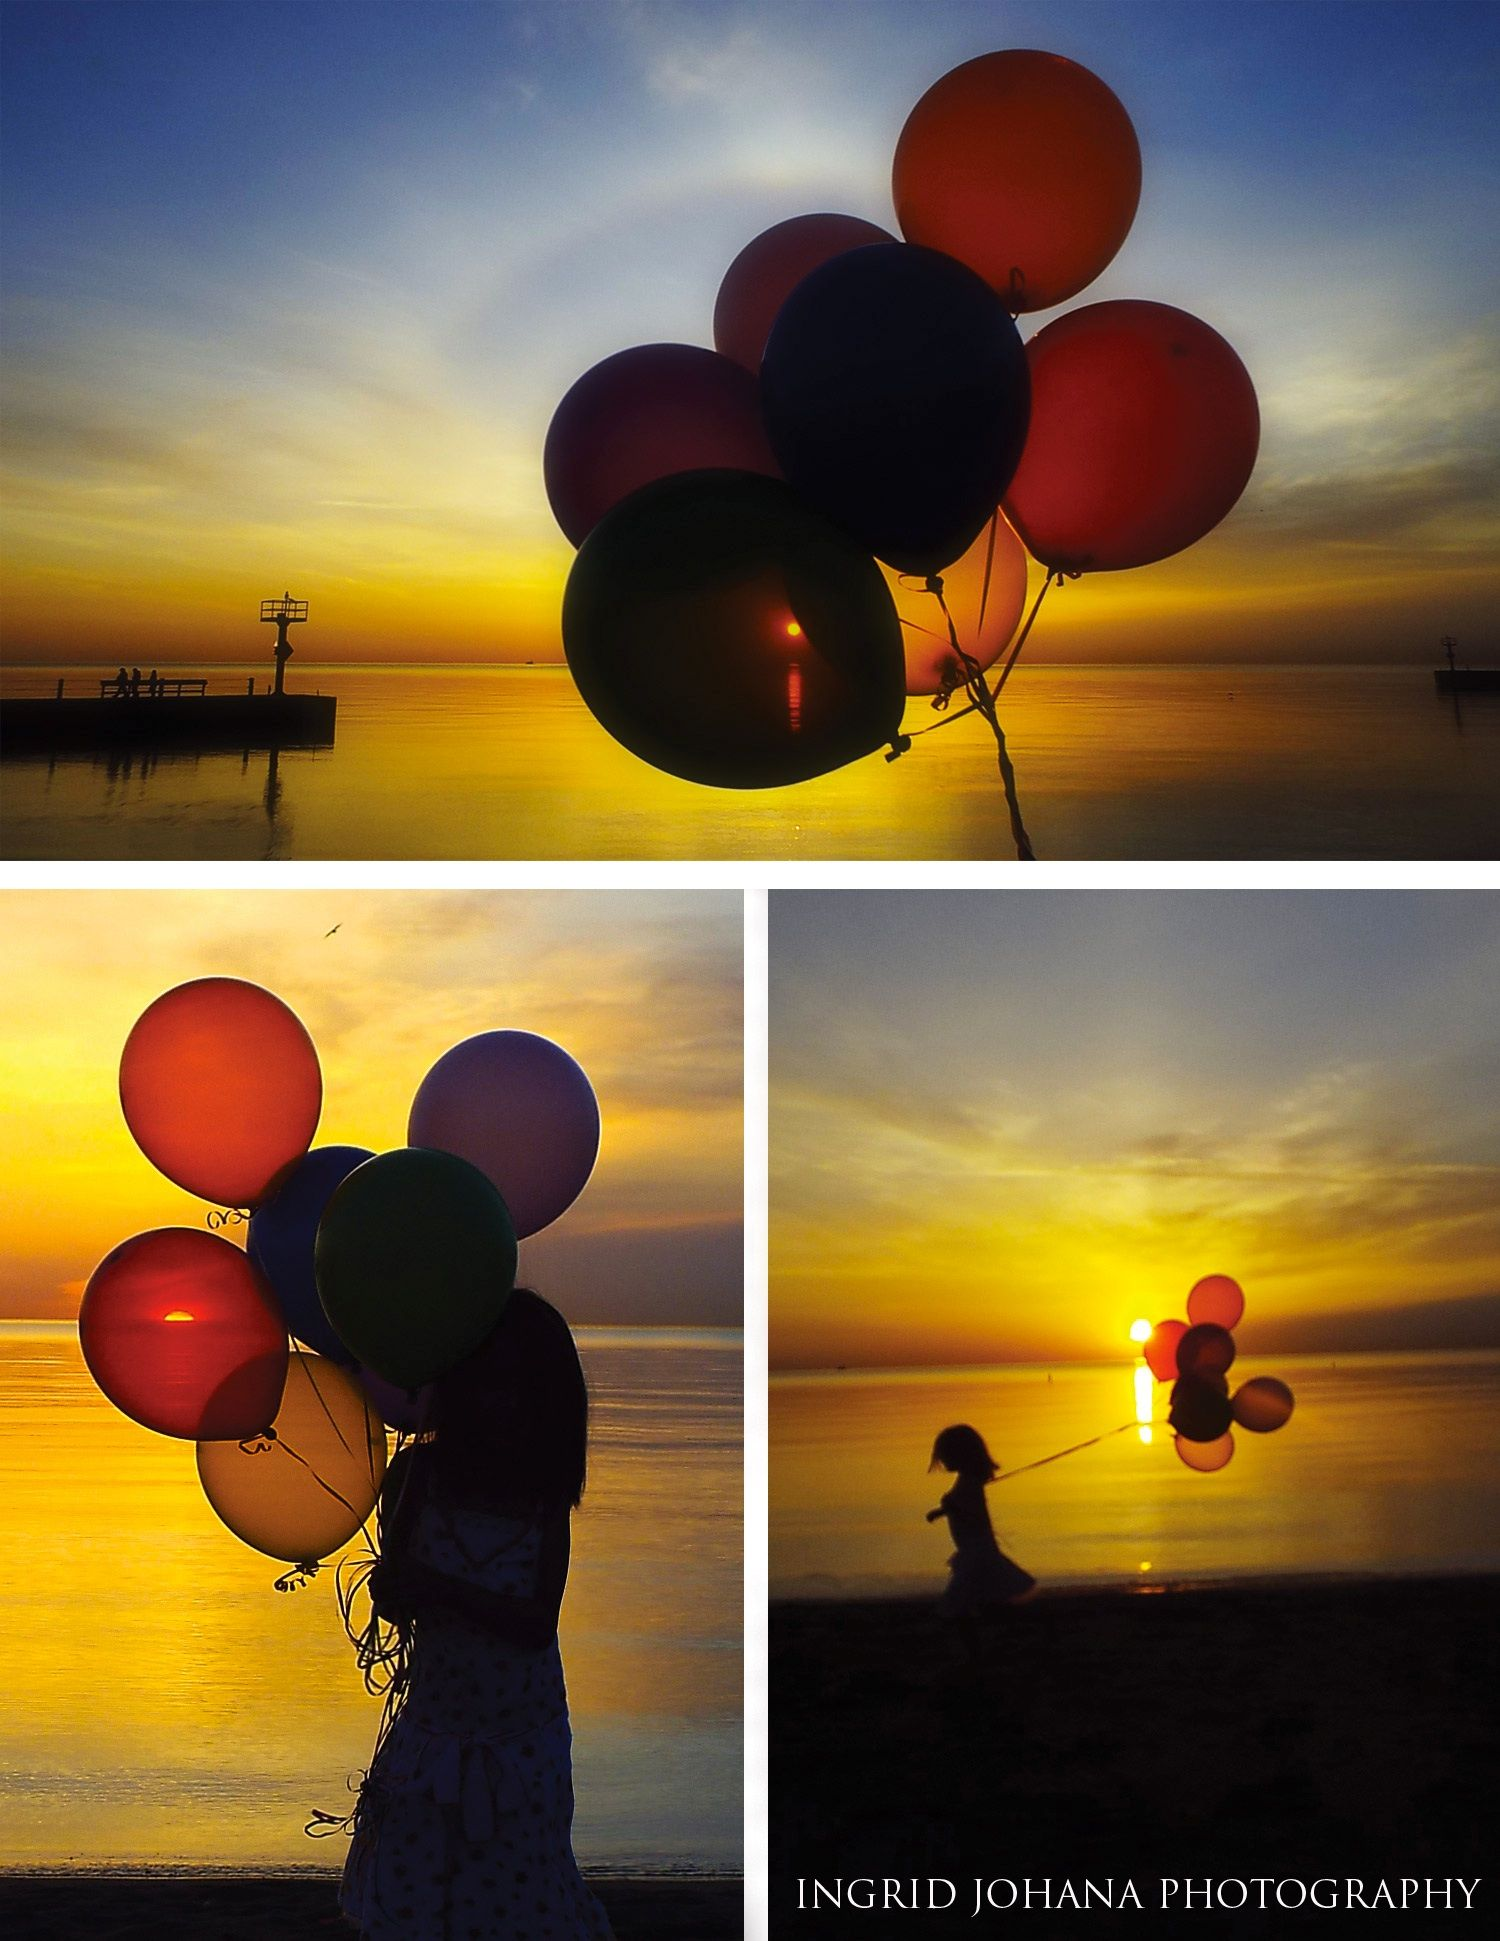 7th Birthday Photo Shoot For My Daughter This Morning 7 Balloons And Sunrise In Chicago